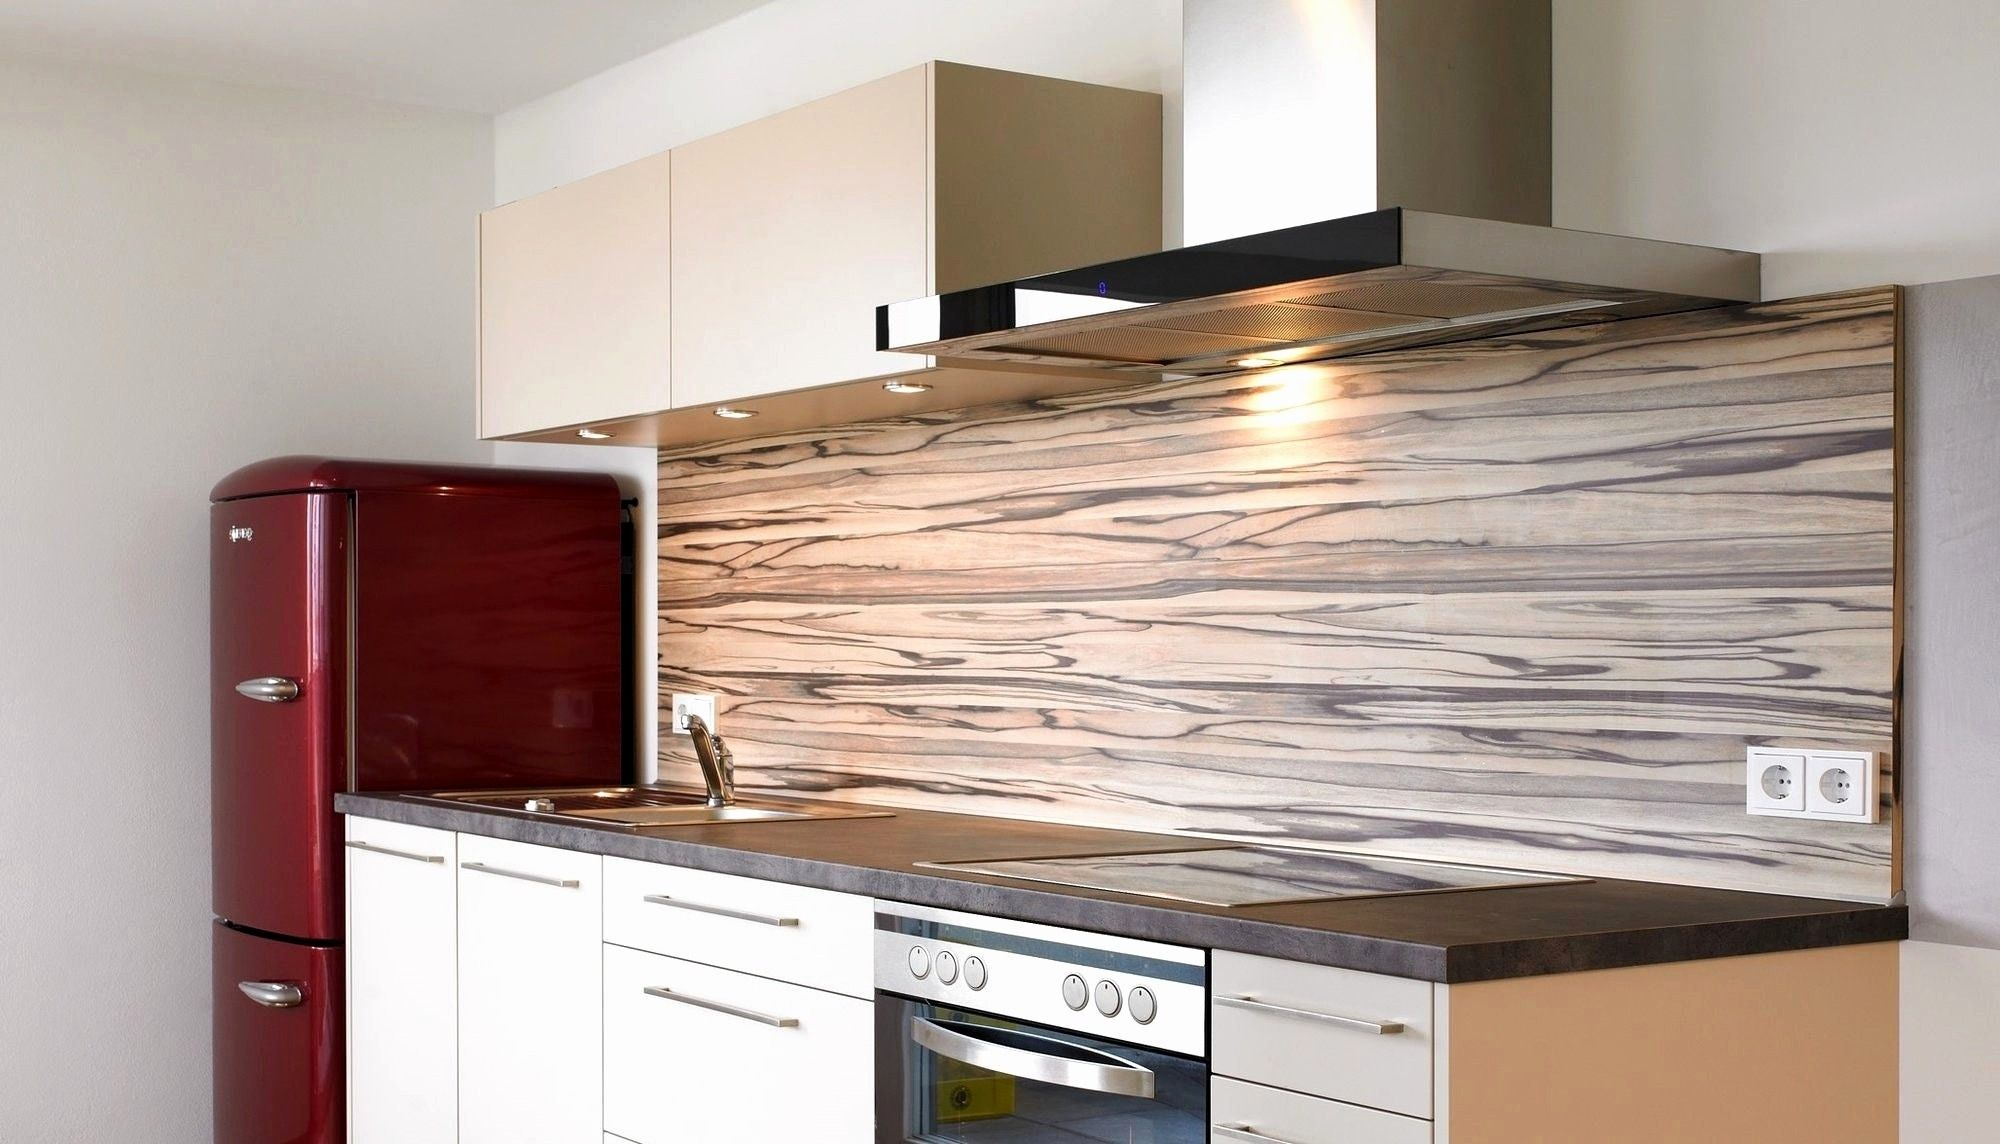 29 Elegant Kuchenschrank Rot Kitchen Kitchen Cabinets Kitchen Countertops